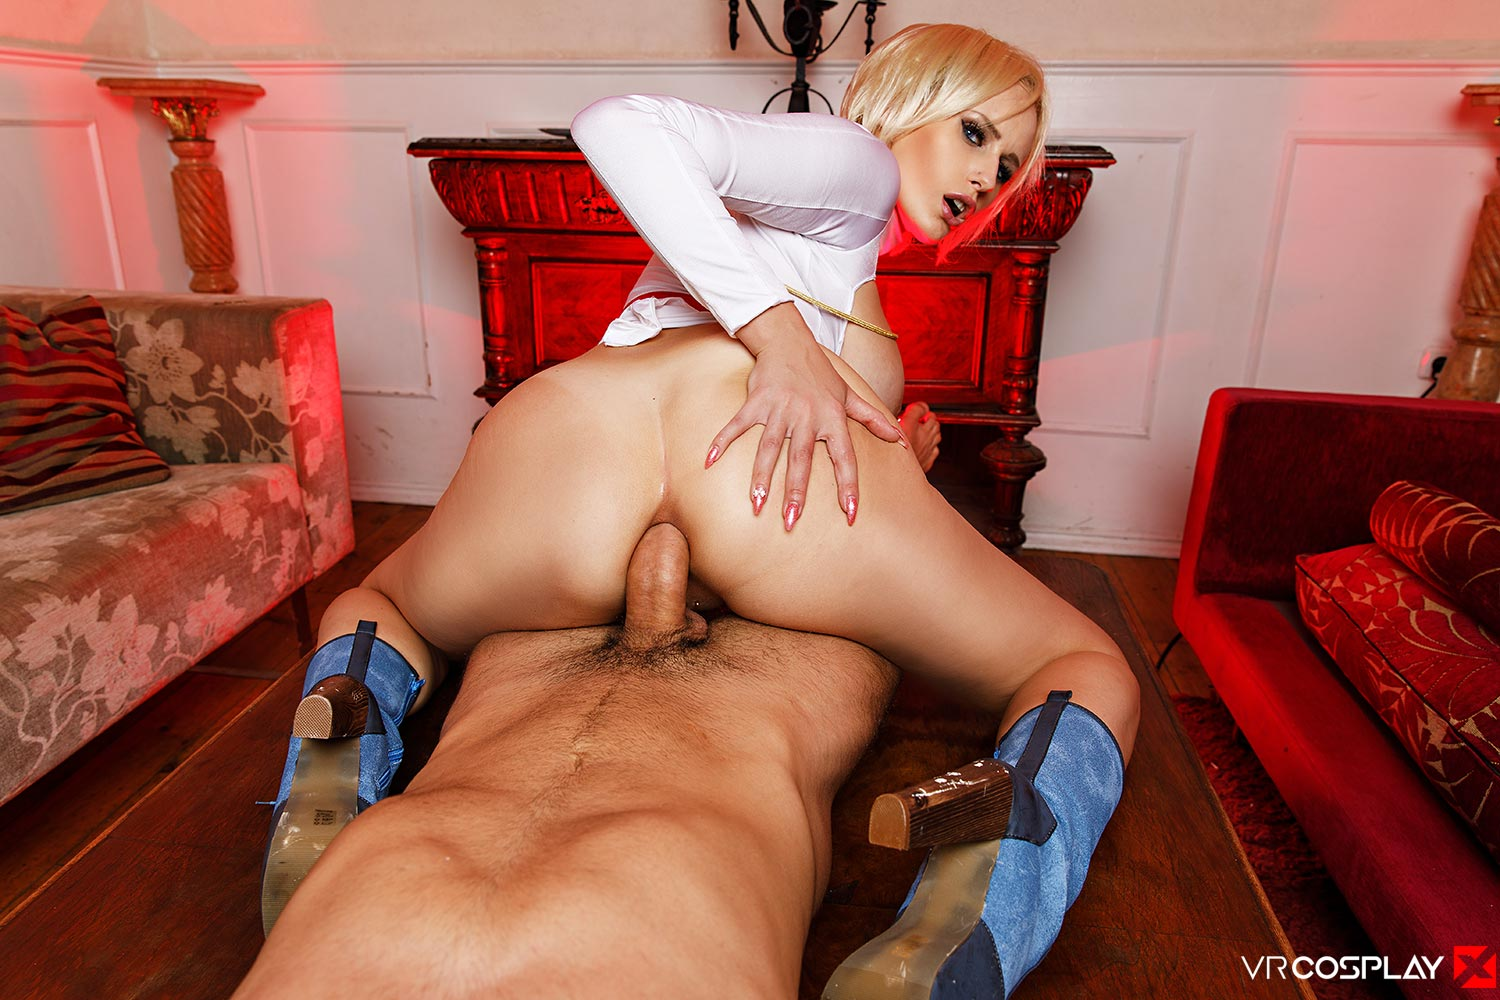 Angel Wicky In Powergirl Assembly A Xxx Parody - Vr 4 Porn-8451